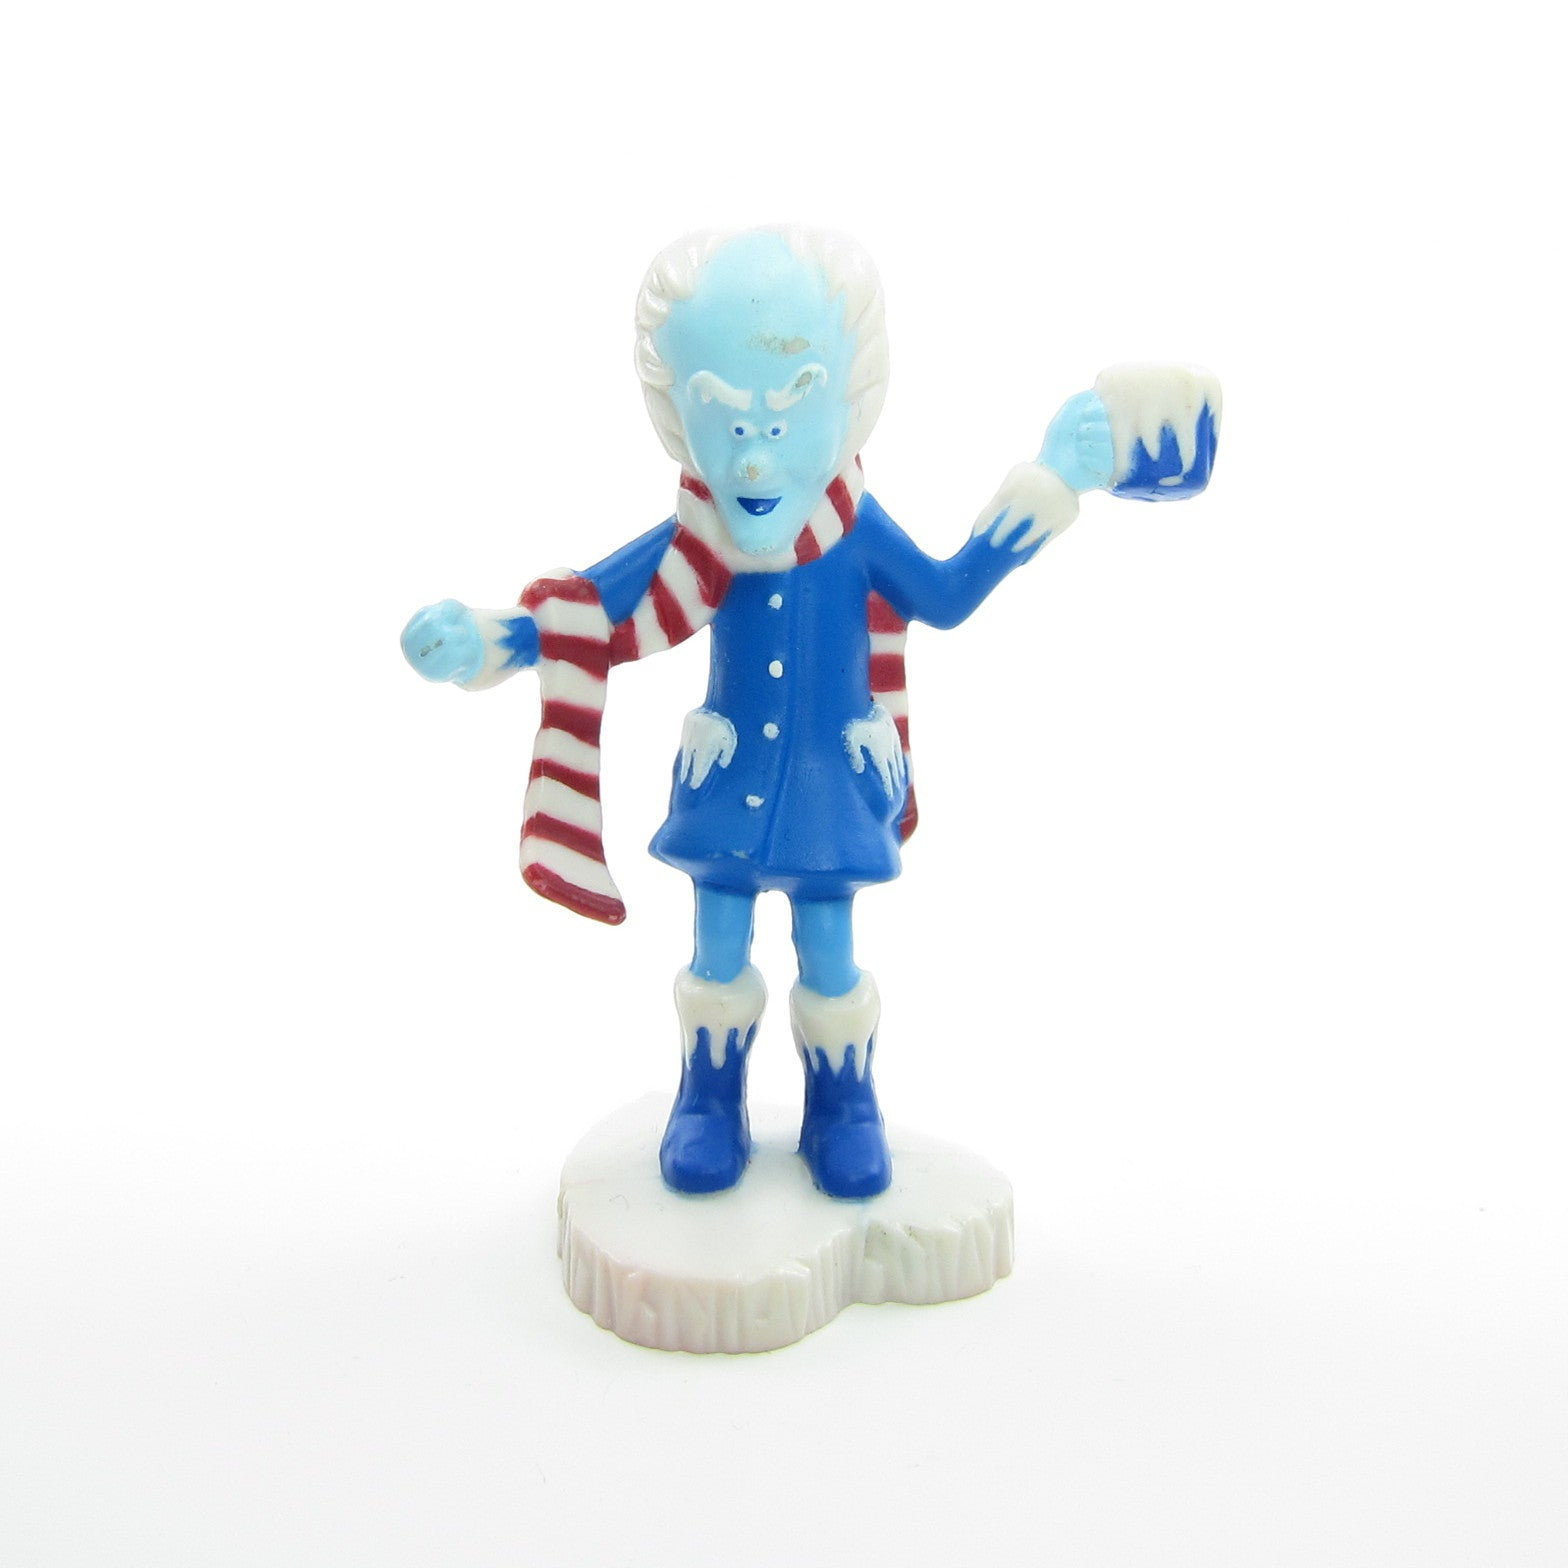 Professor Cold Heart Trying to Freeze Your Feelings miniature figurine